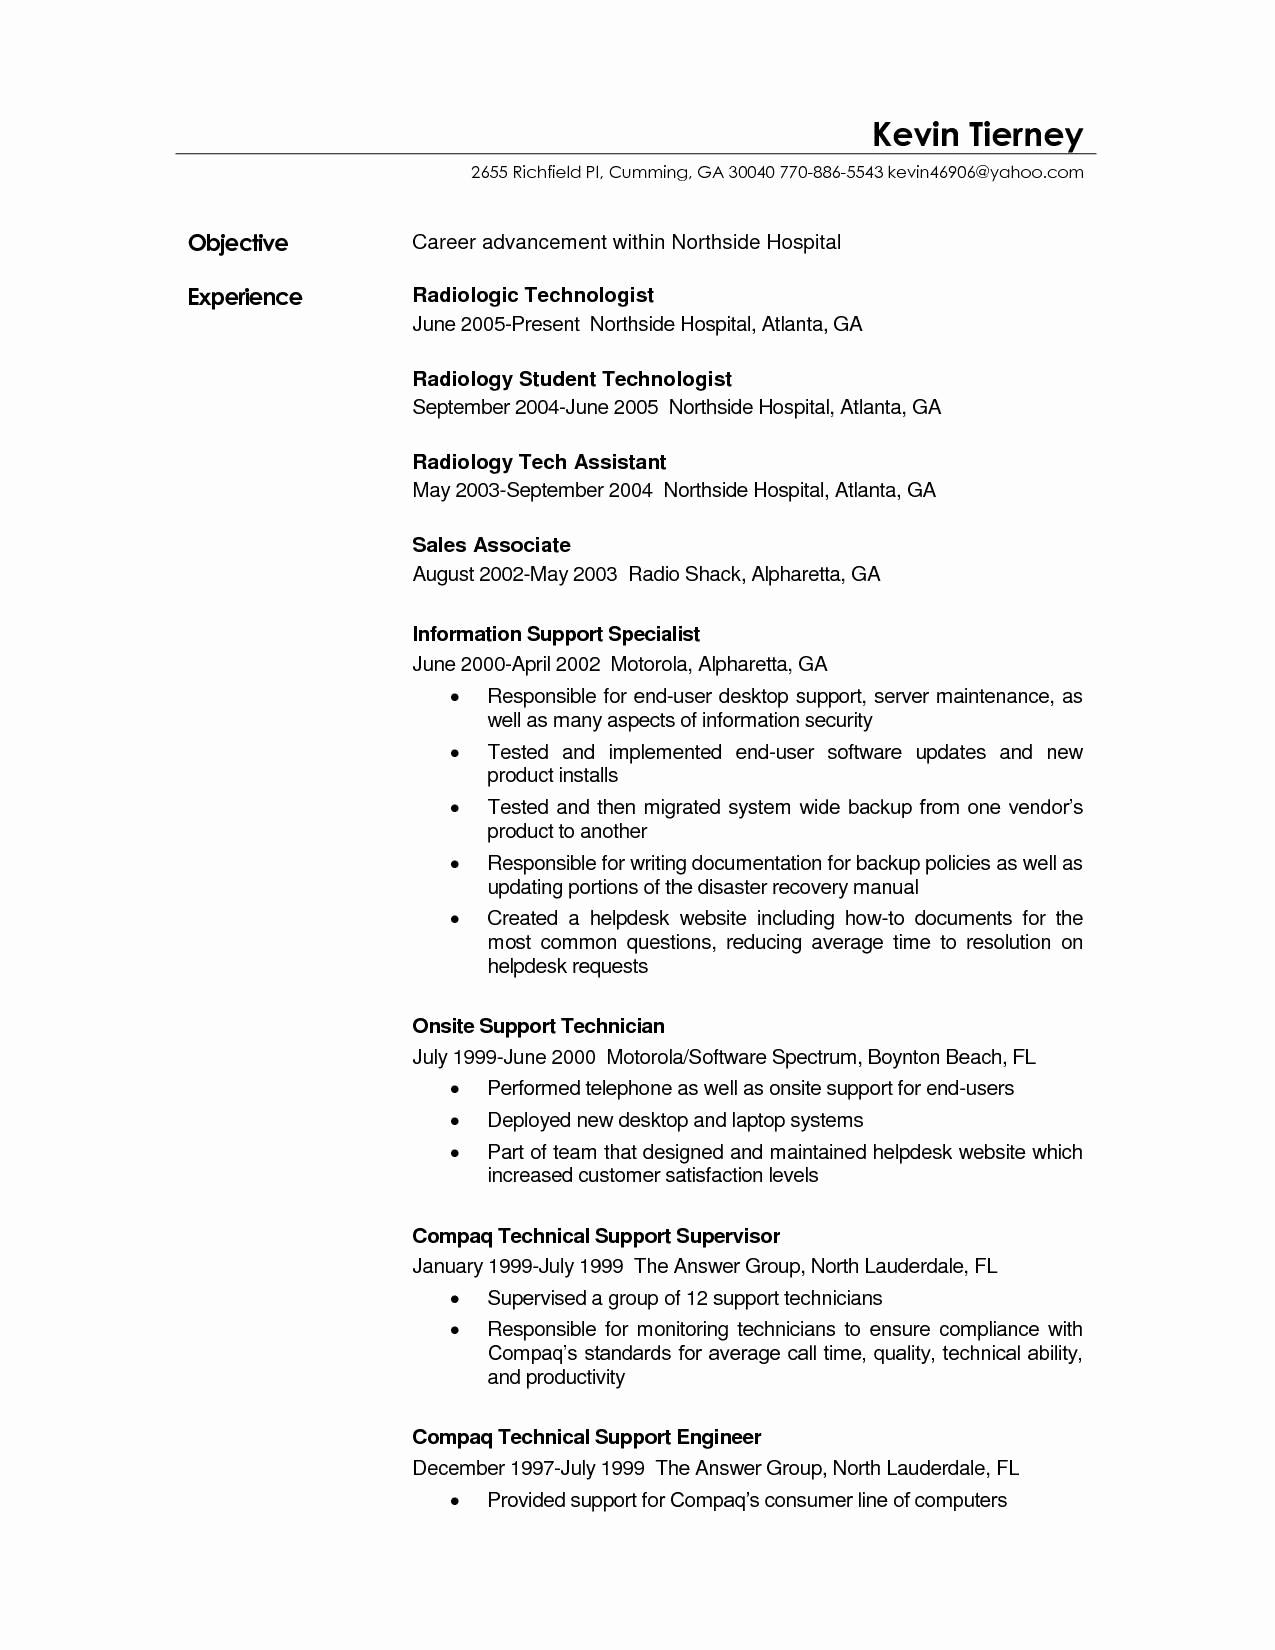 surgical tech resume template example-37 Fresh Surgical Tech Resume Sample 13-m